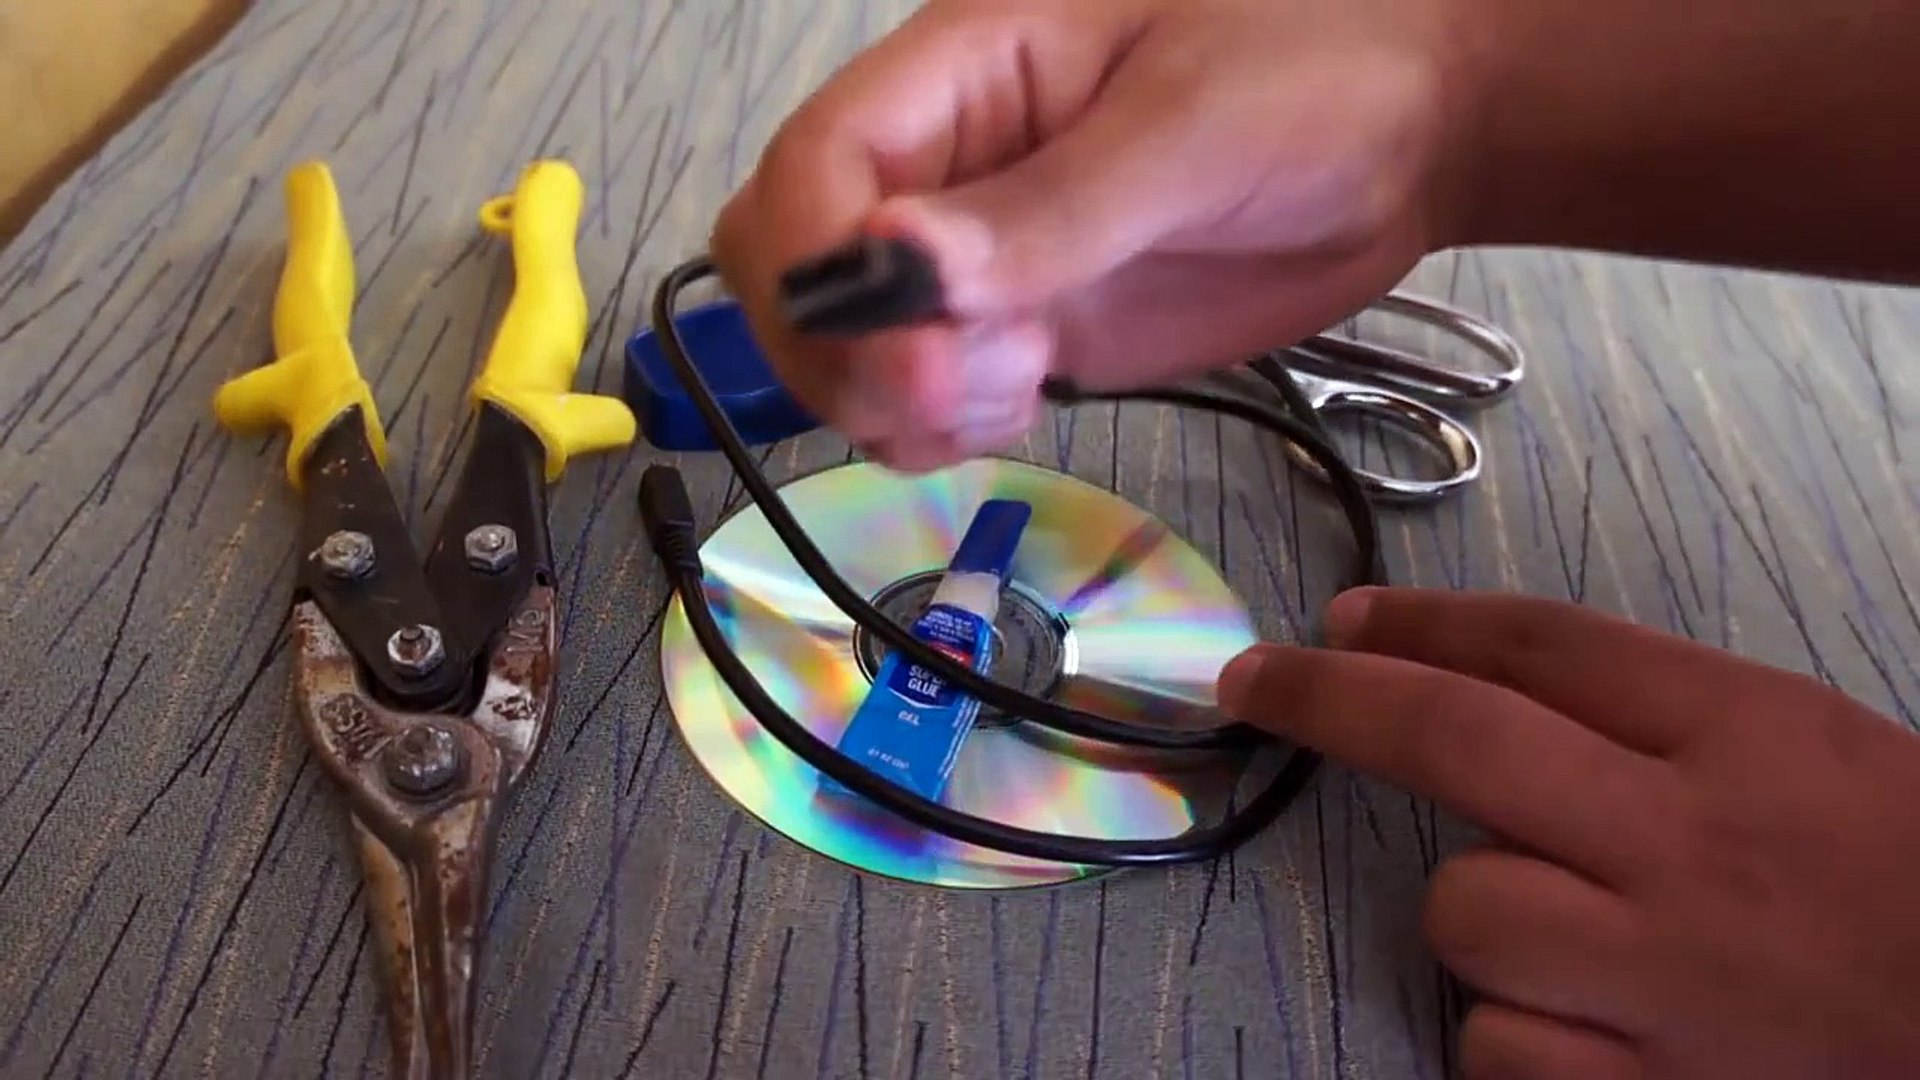 How To Make A Homemade Fan Without Any Batteries!